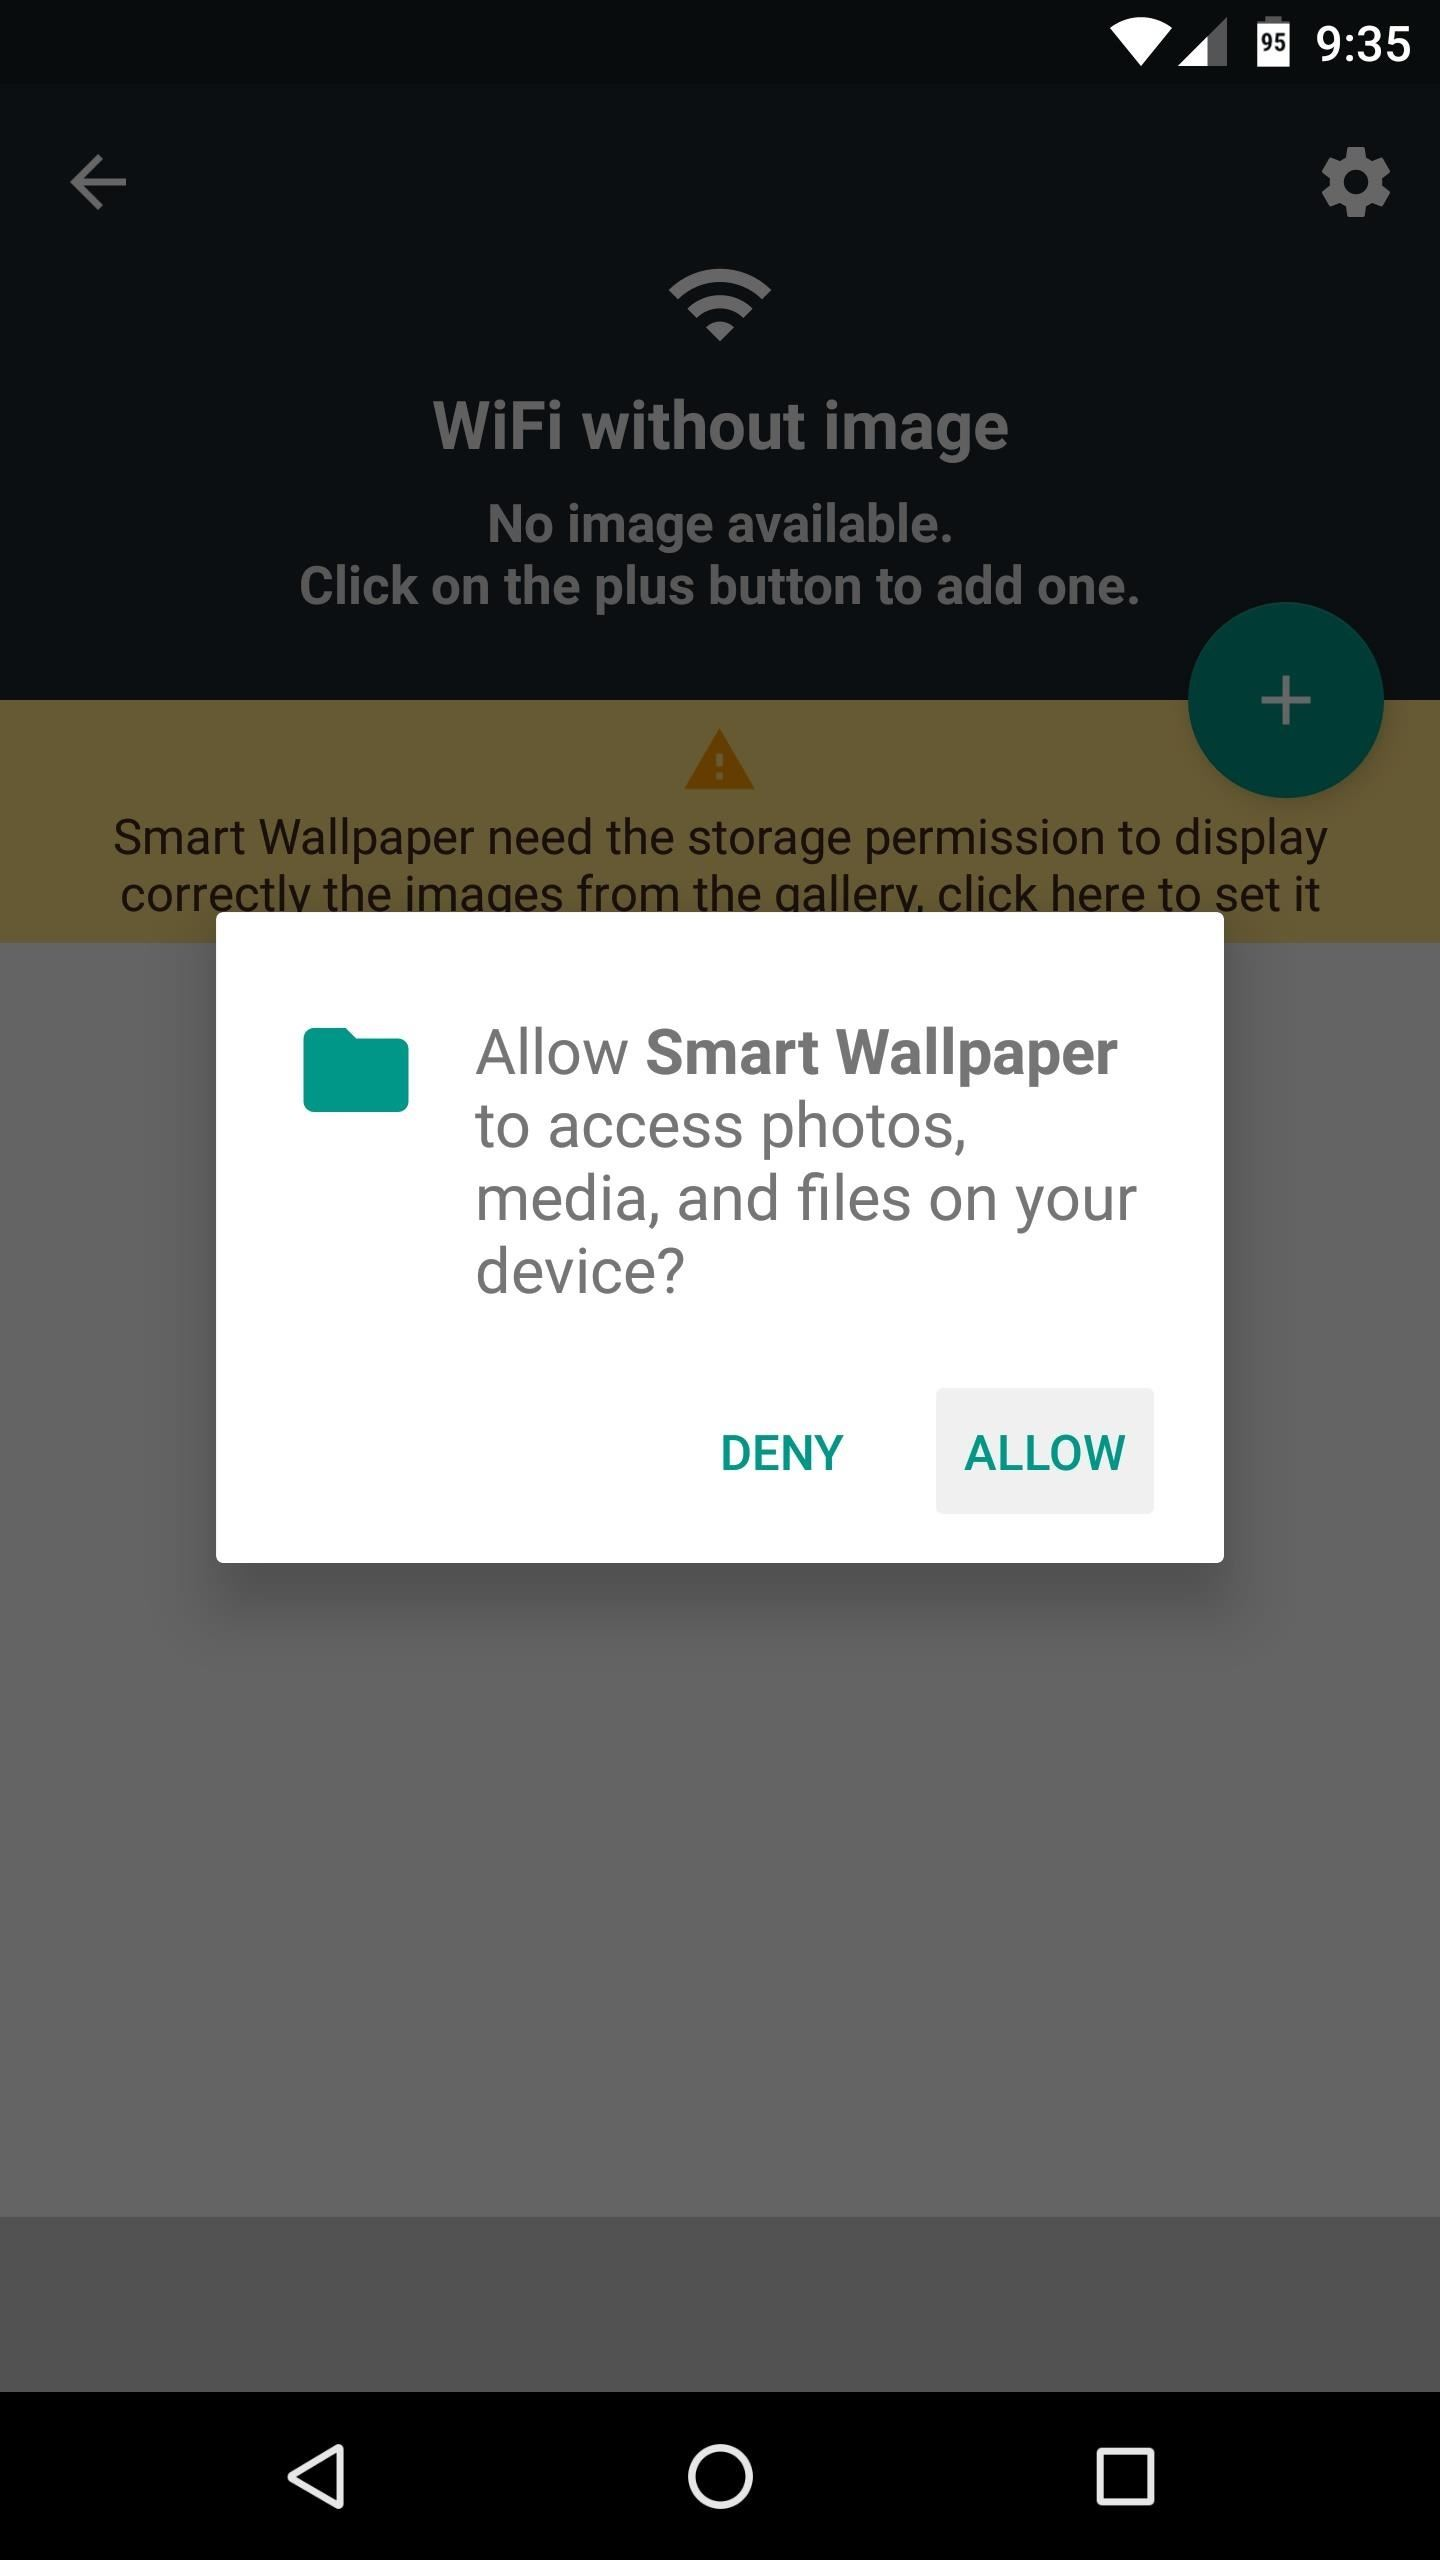 android marshmallow or higher youll have to give smart wallpaper permission to access your photos so tap the yellow bar near the top of the screen